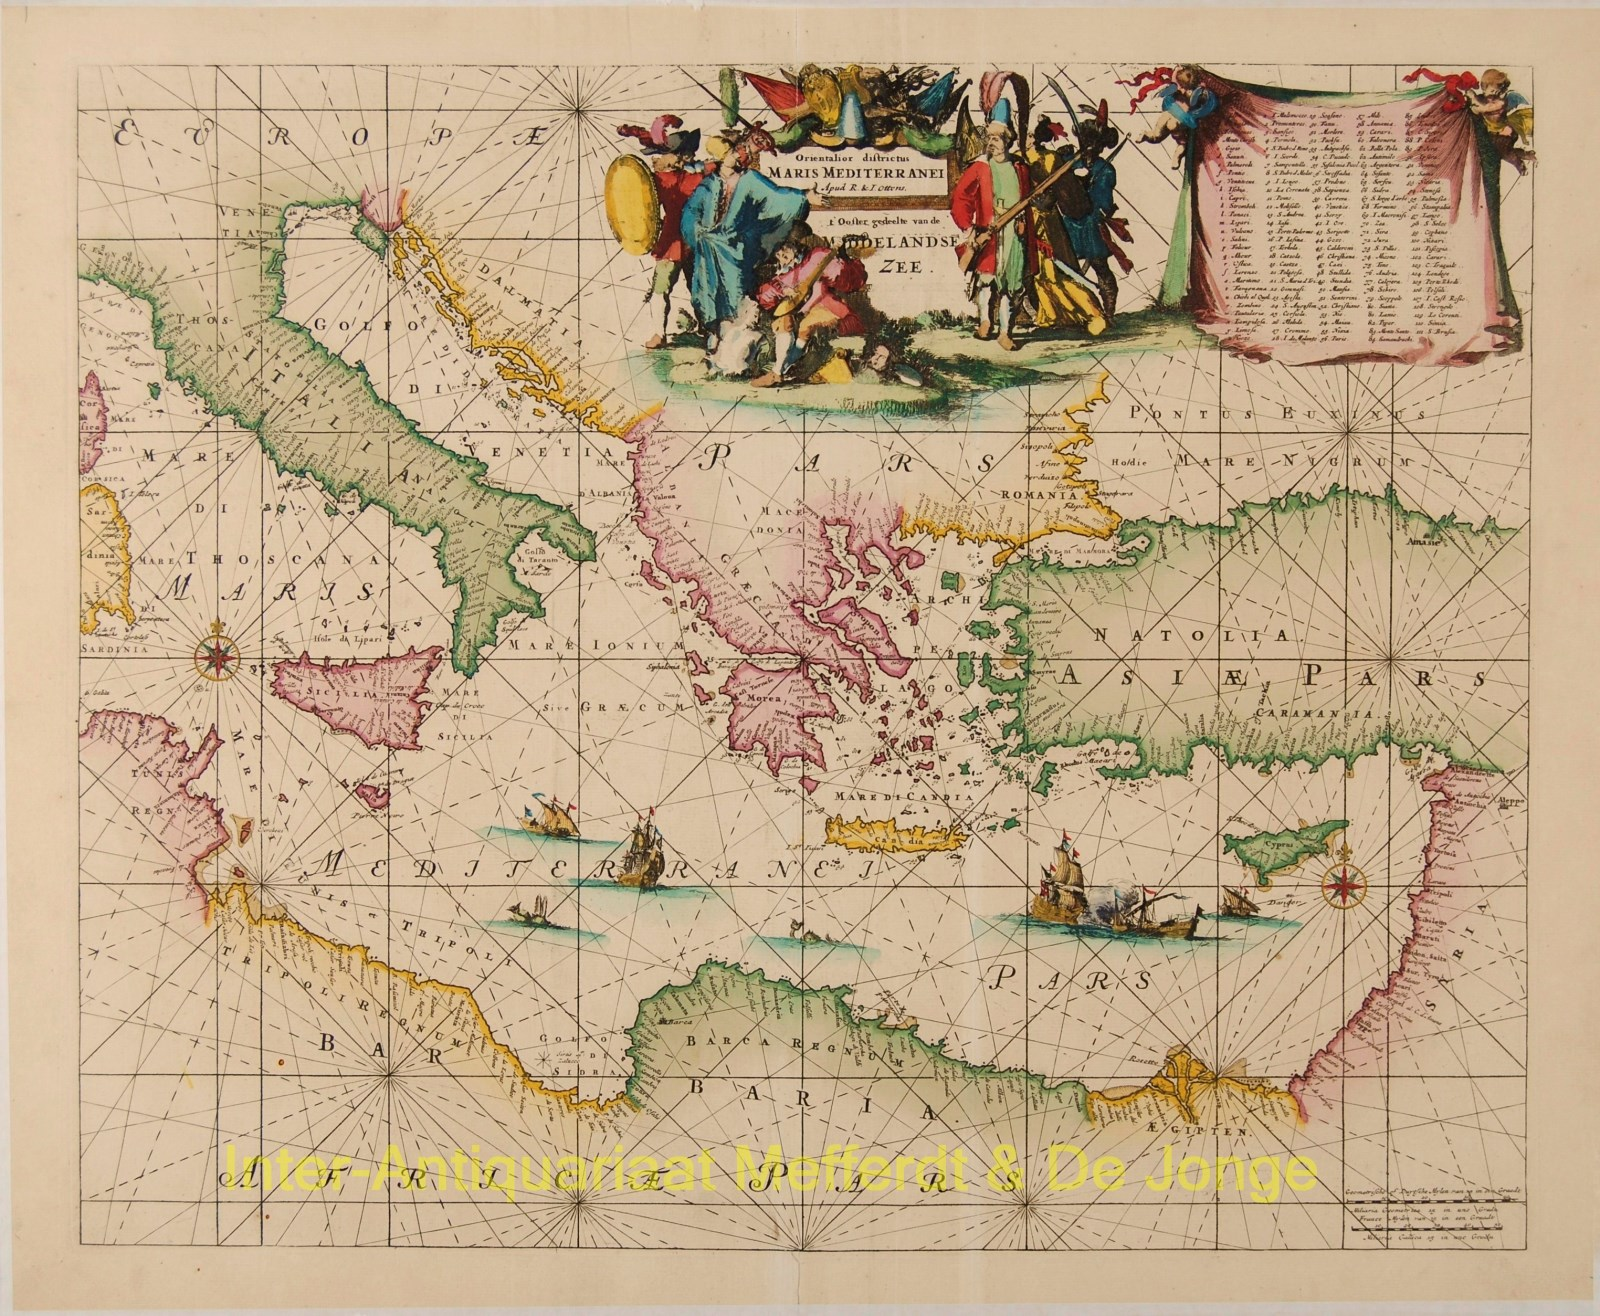 Mediterranean (eastern), antique sea chart - Ottens